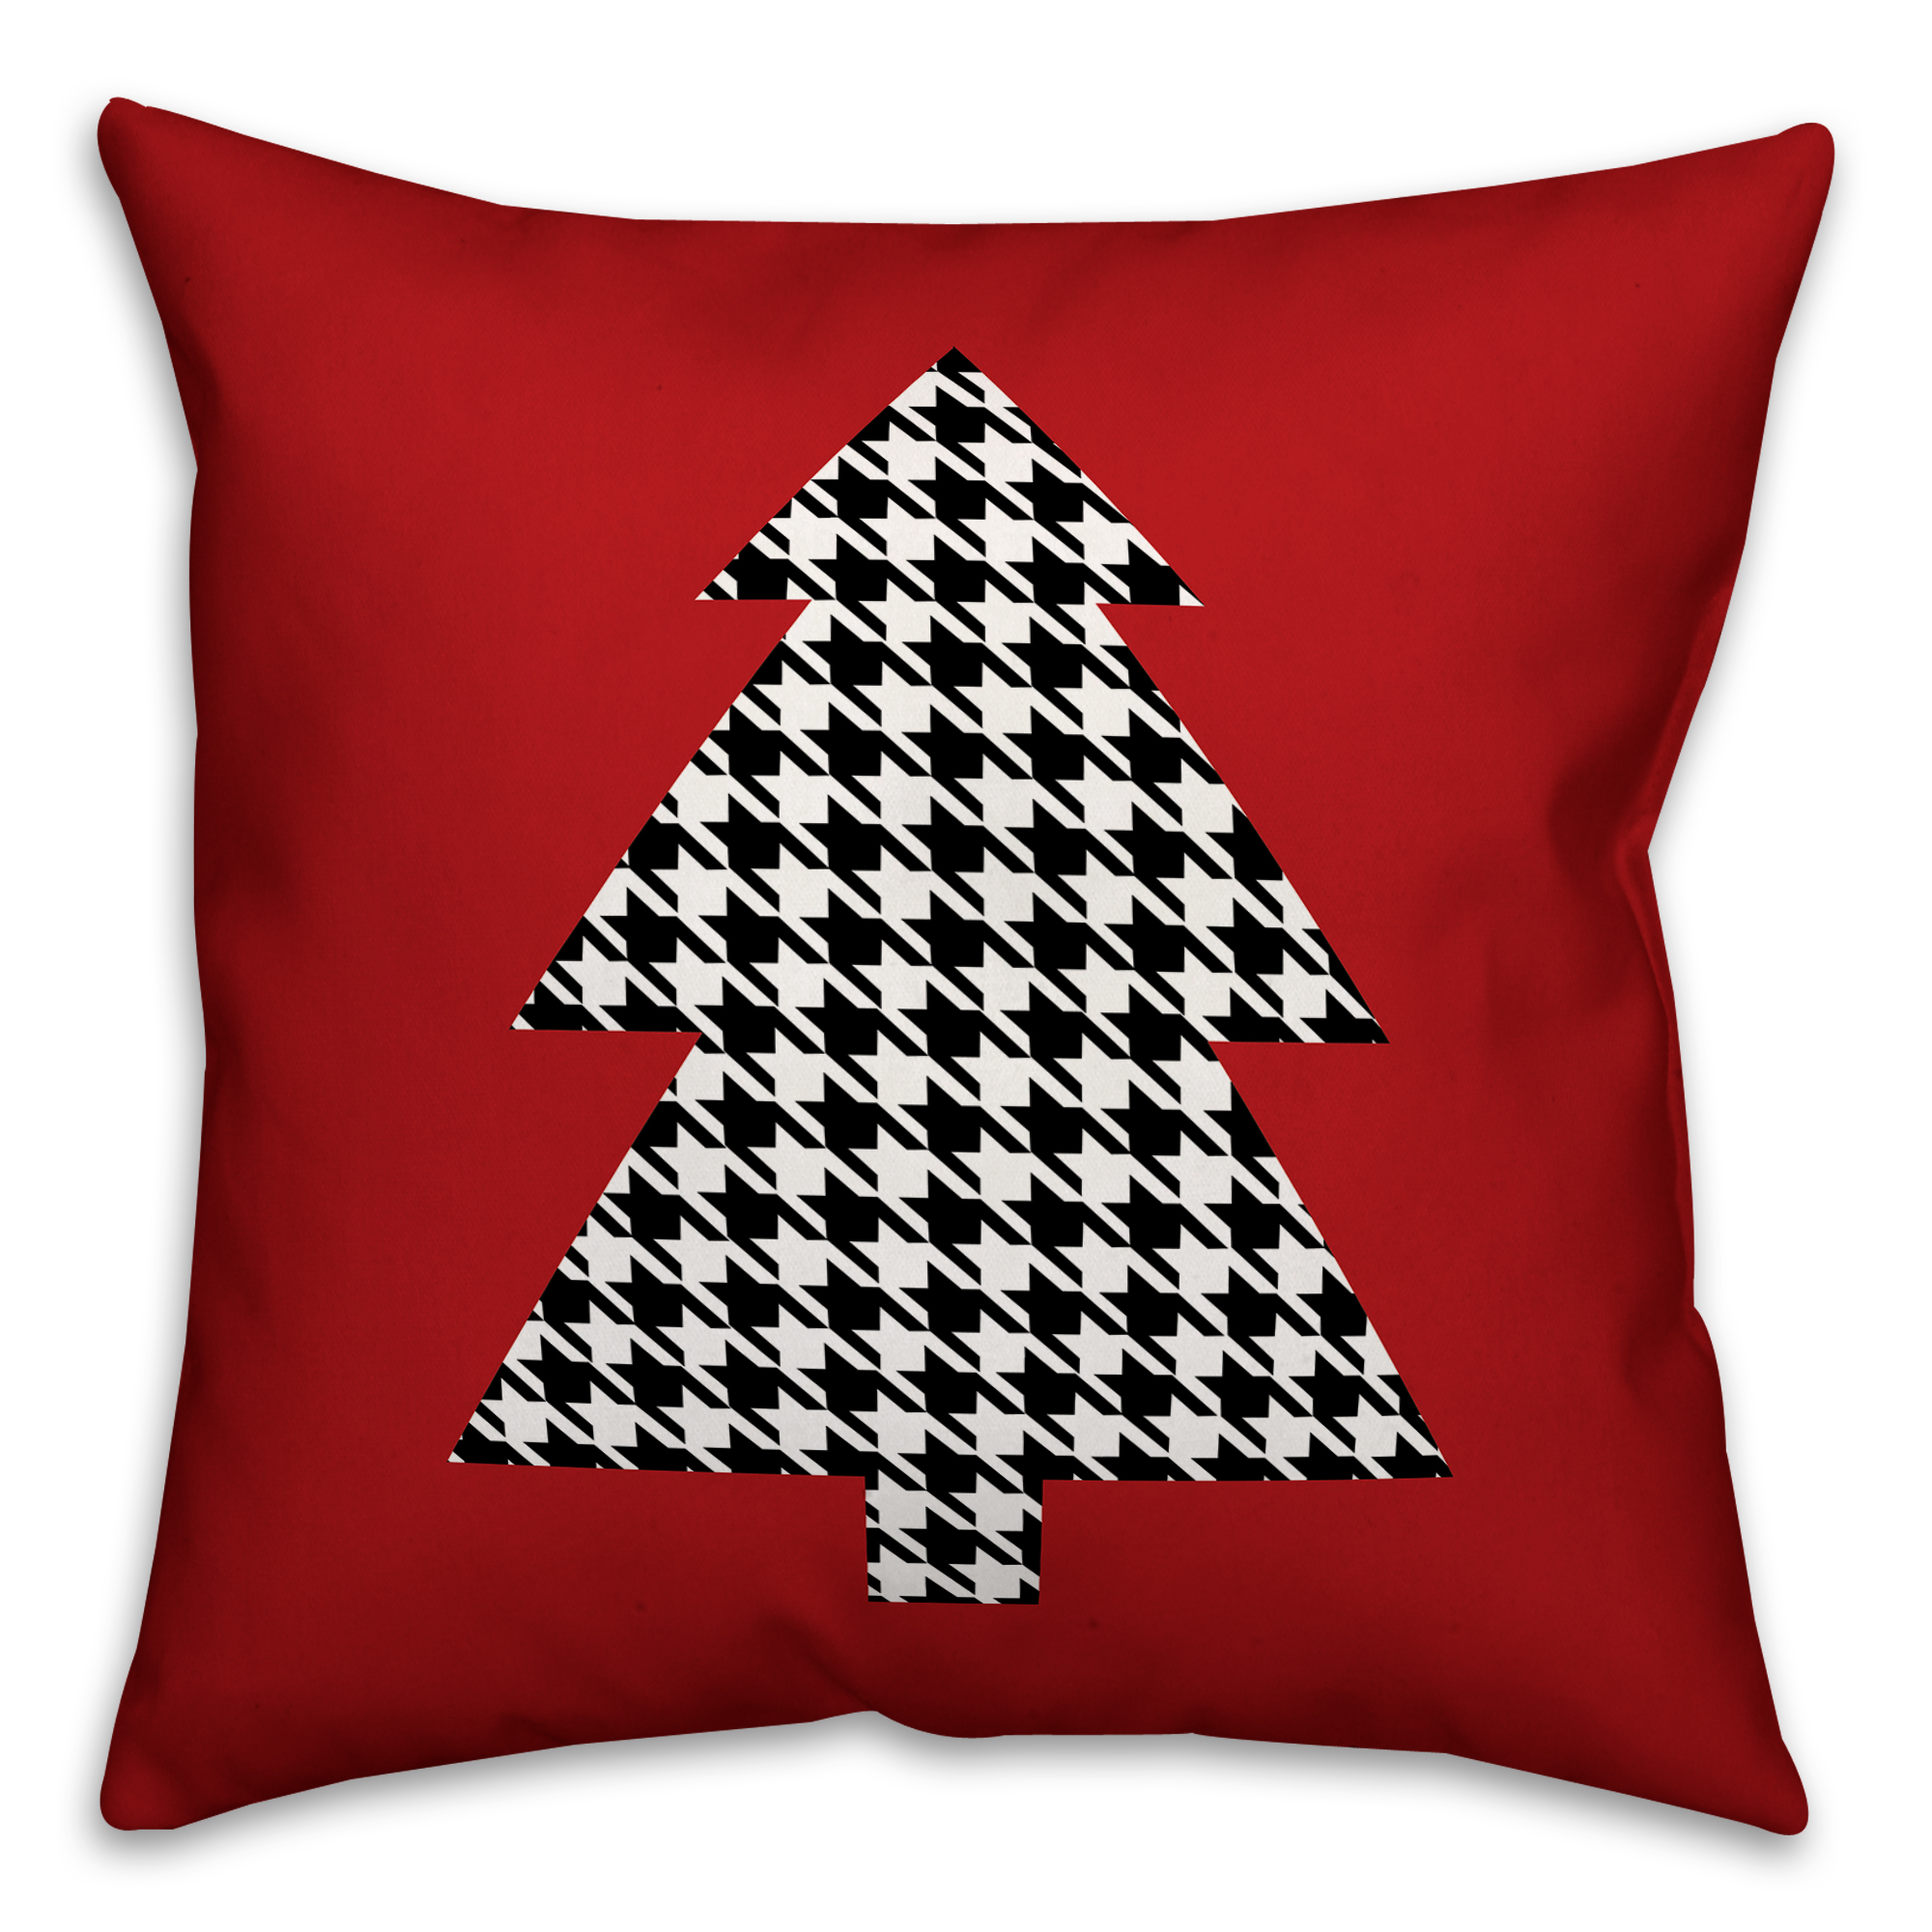 Houndstooth Christmas Tree 16x16 Spun Poly Pillow Cover